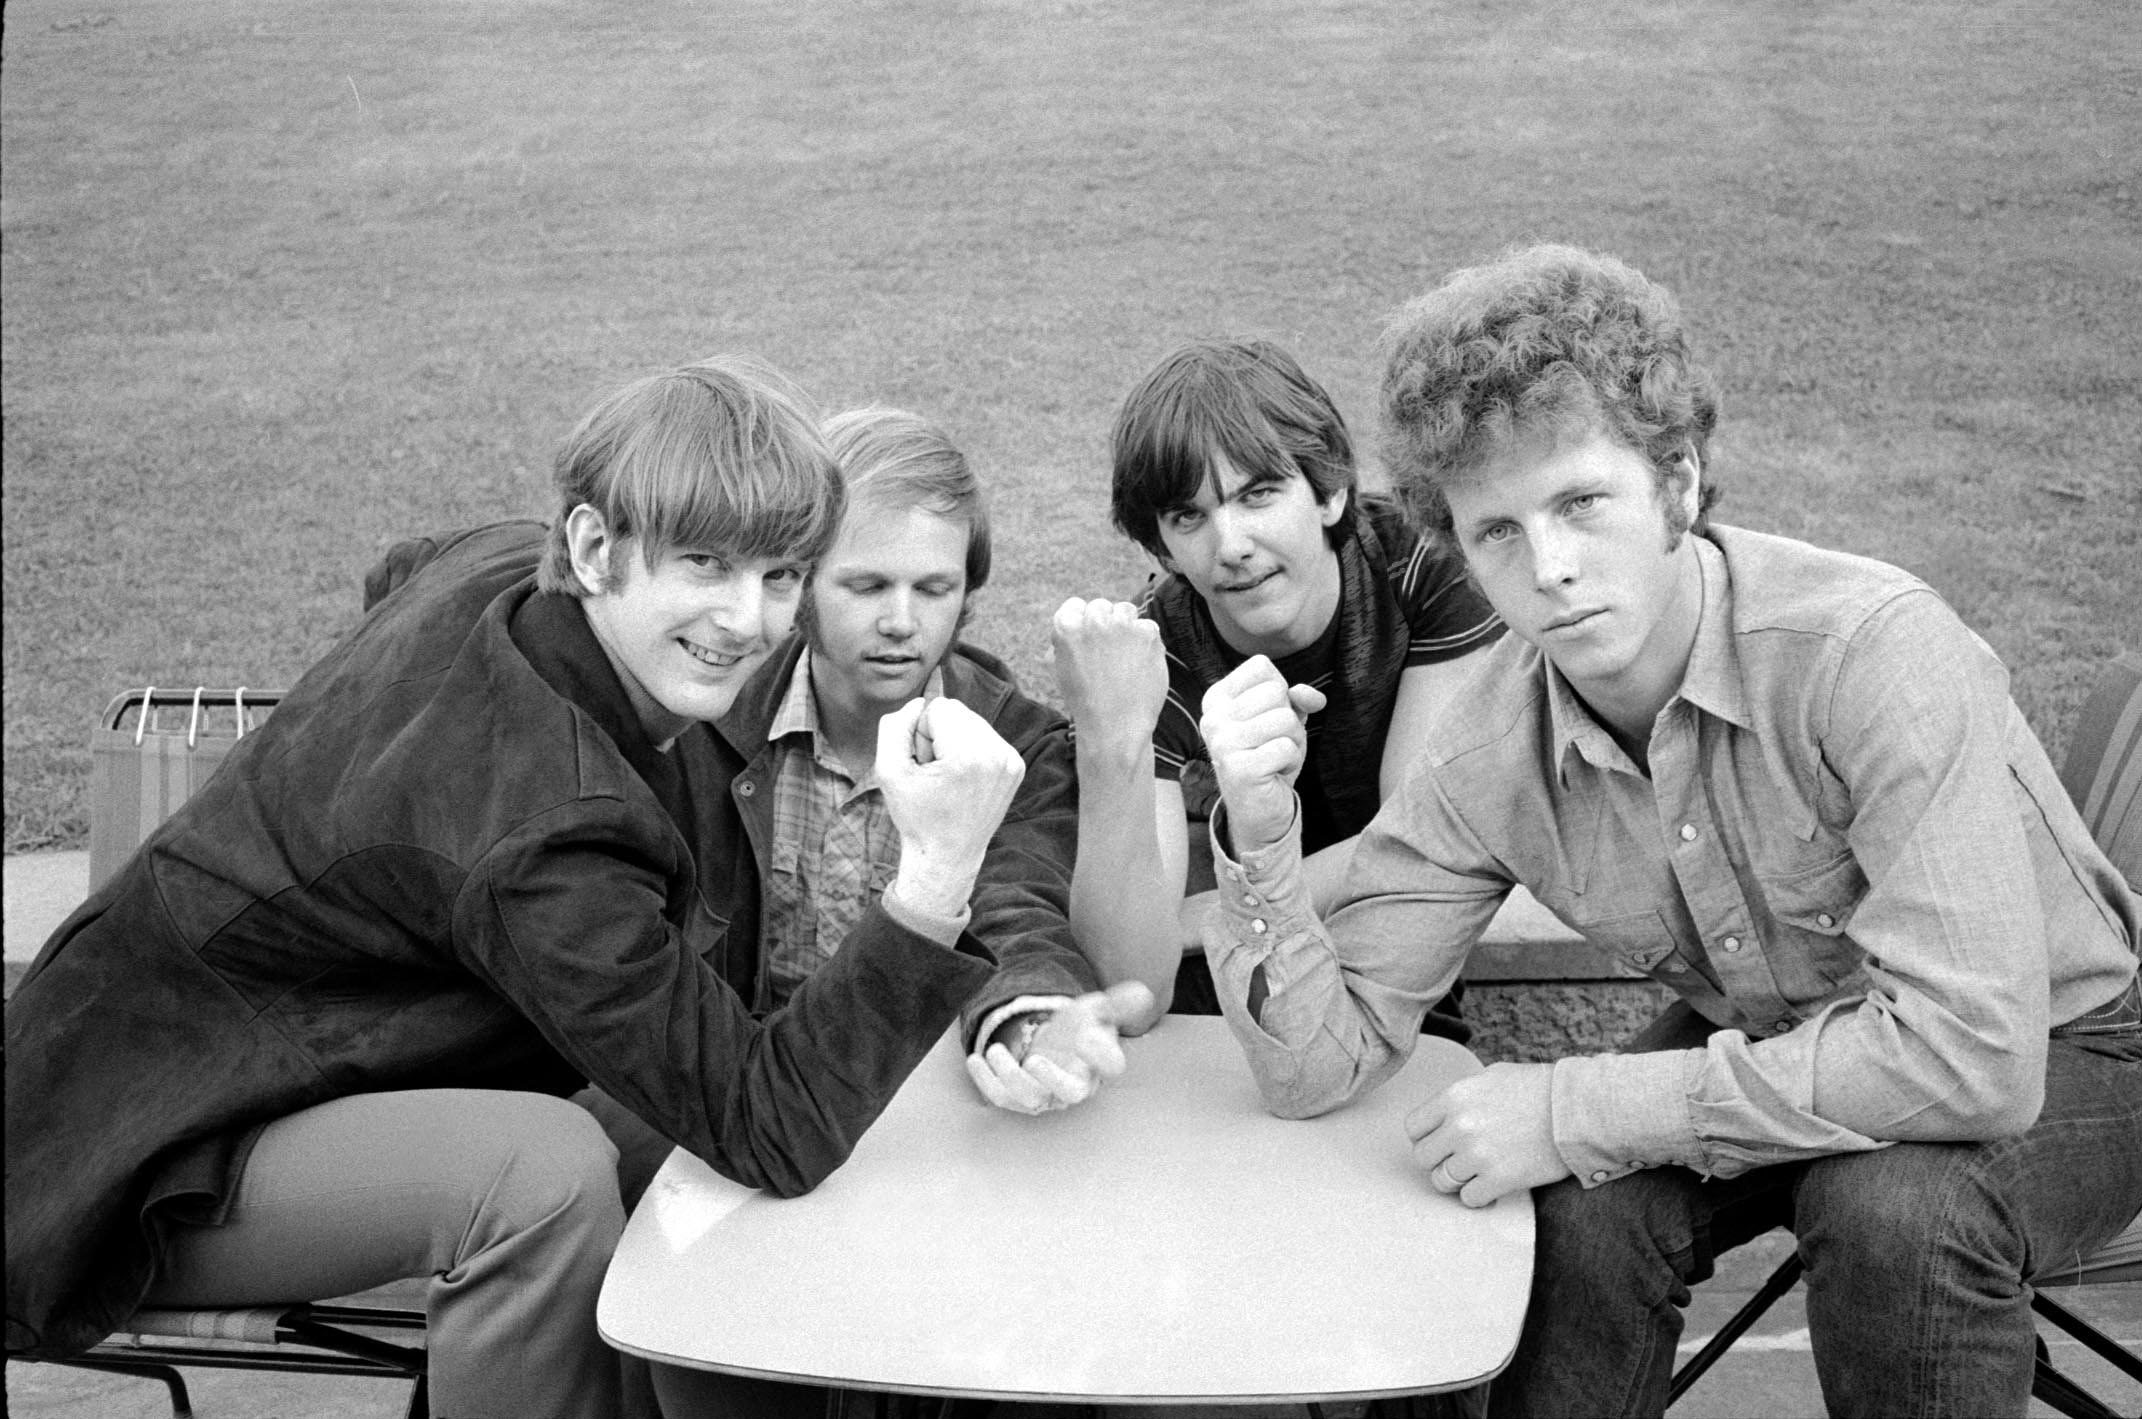 The Byrds, London, May 1968. L-R: Roger McGuinn, Kevin Kelley, Gram Parsons, Chris Hillman (Trinity Mirror / Mirrorpix / Alamy Stock Photo)